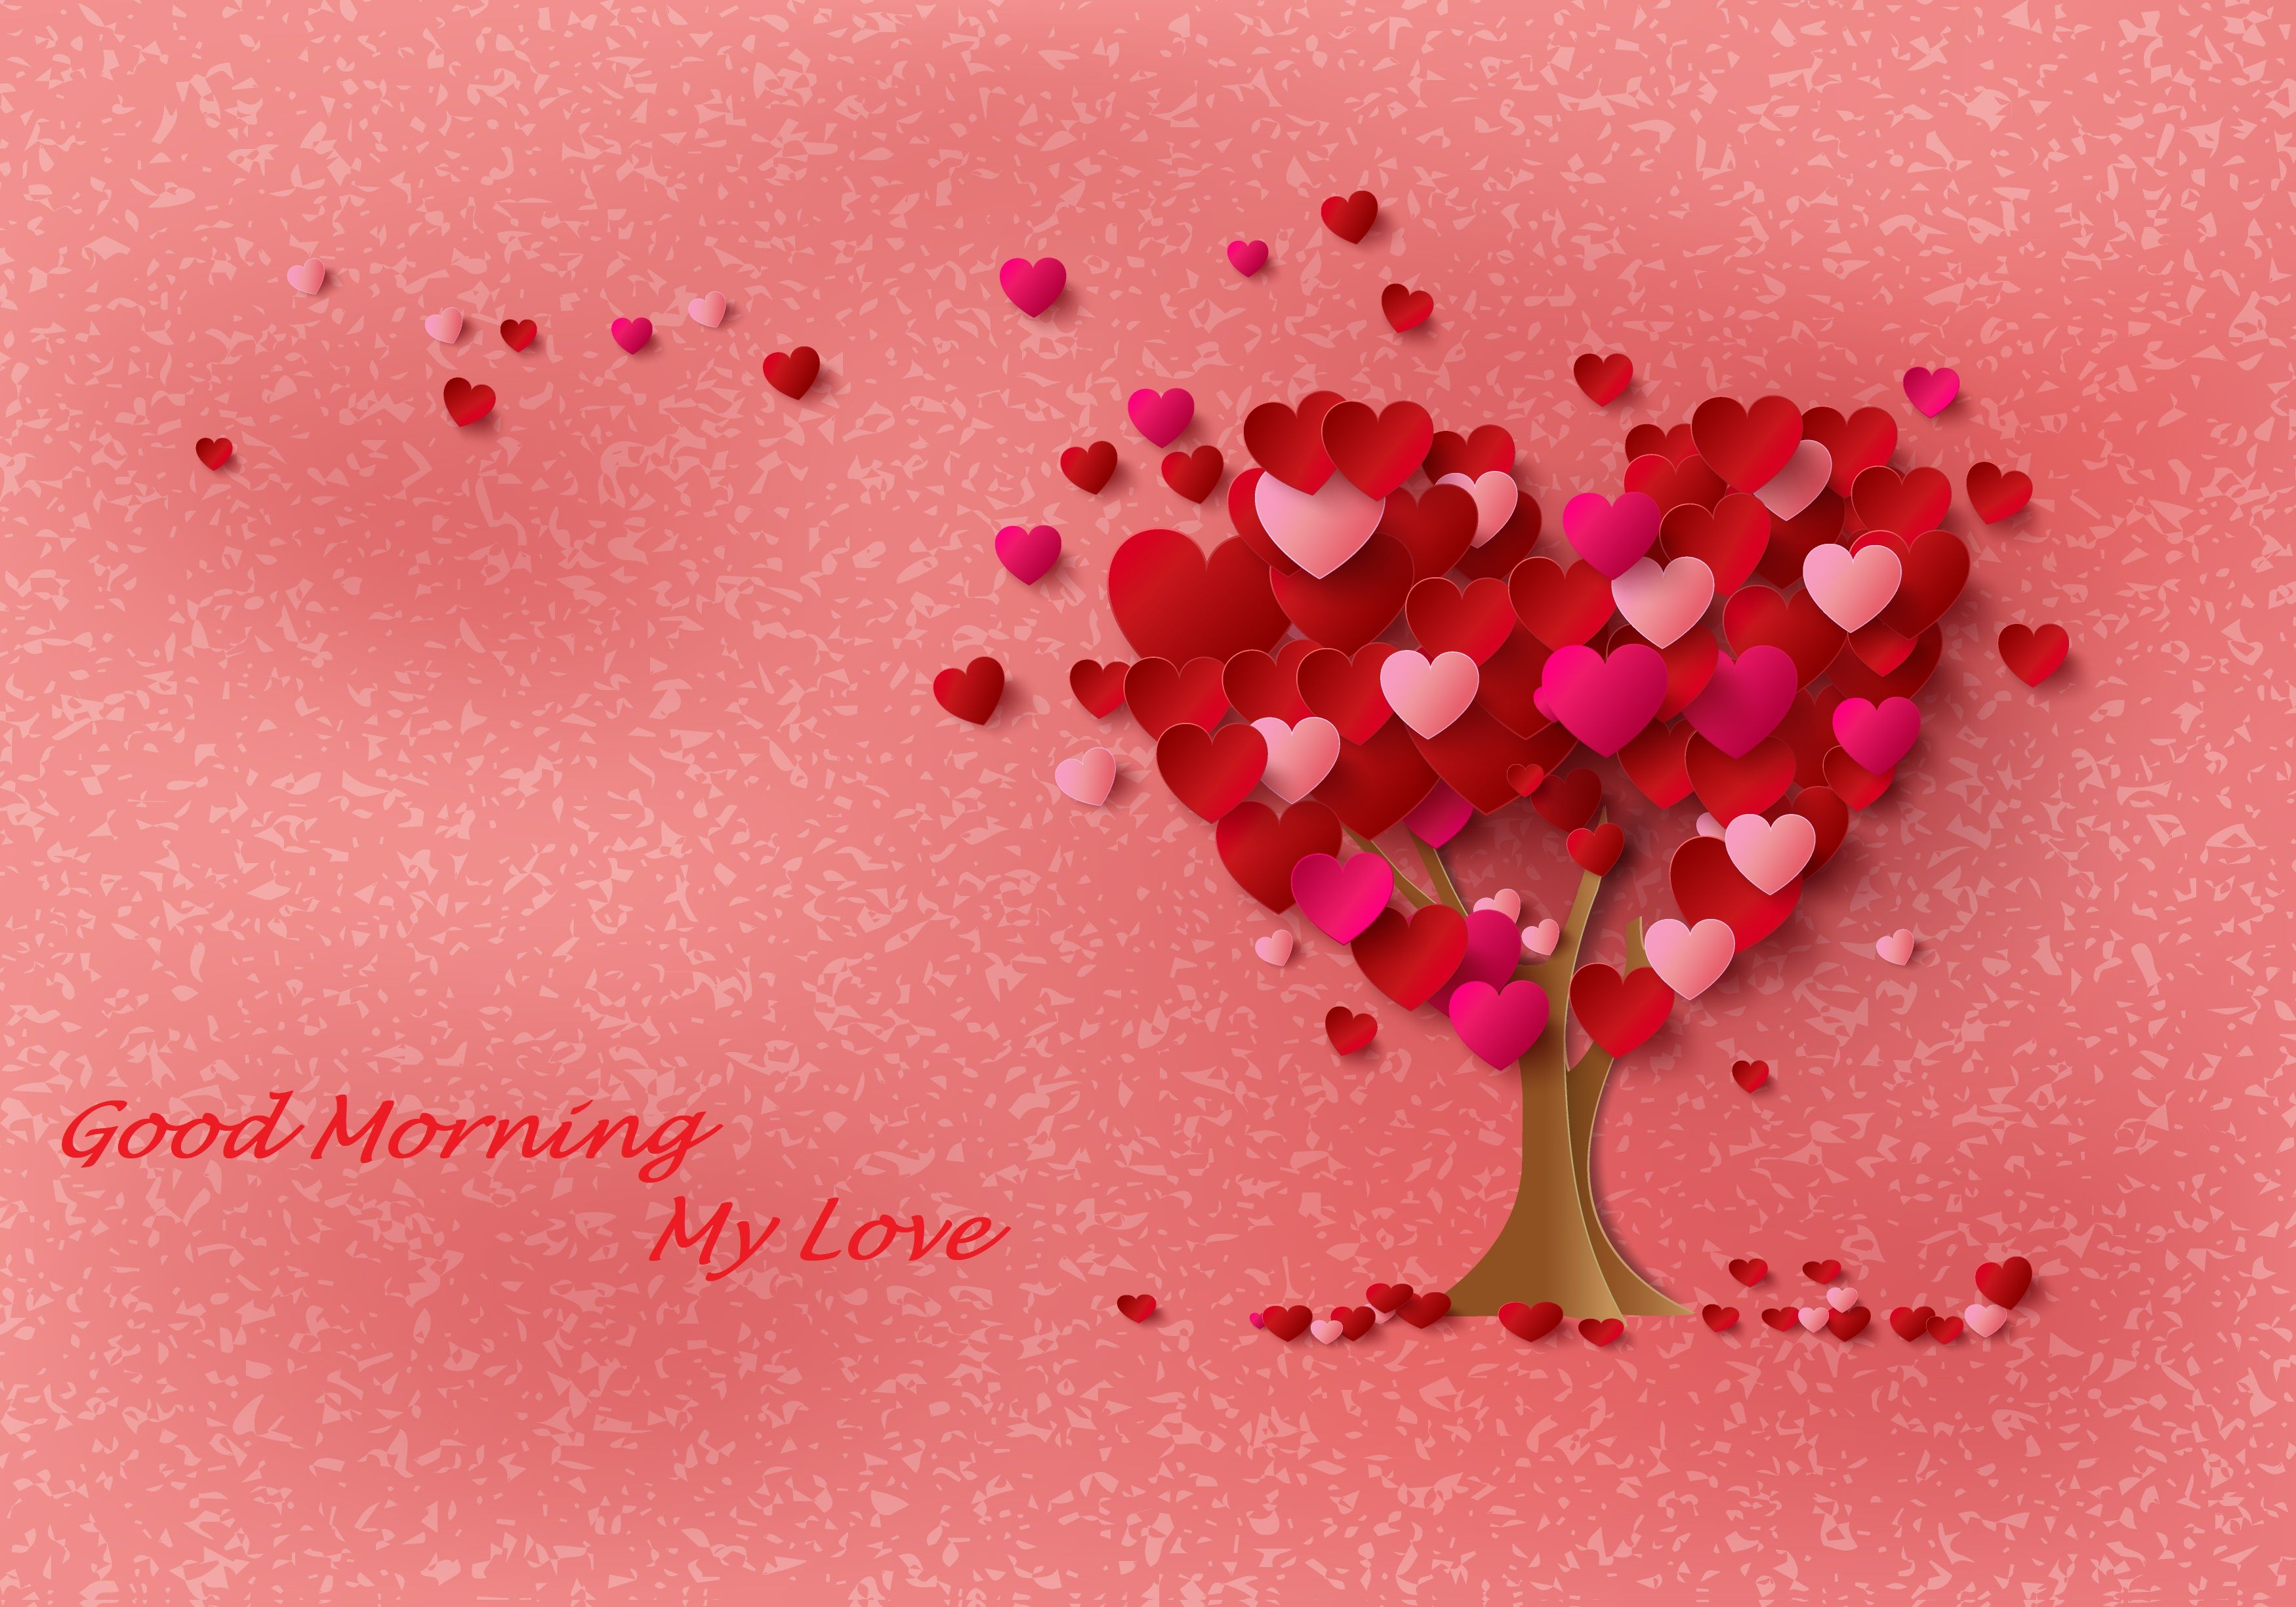 Romantic Good Morning My Love Images Hd Is Amazing Hd Wallpapers